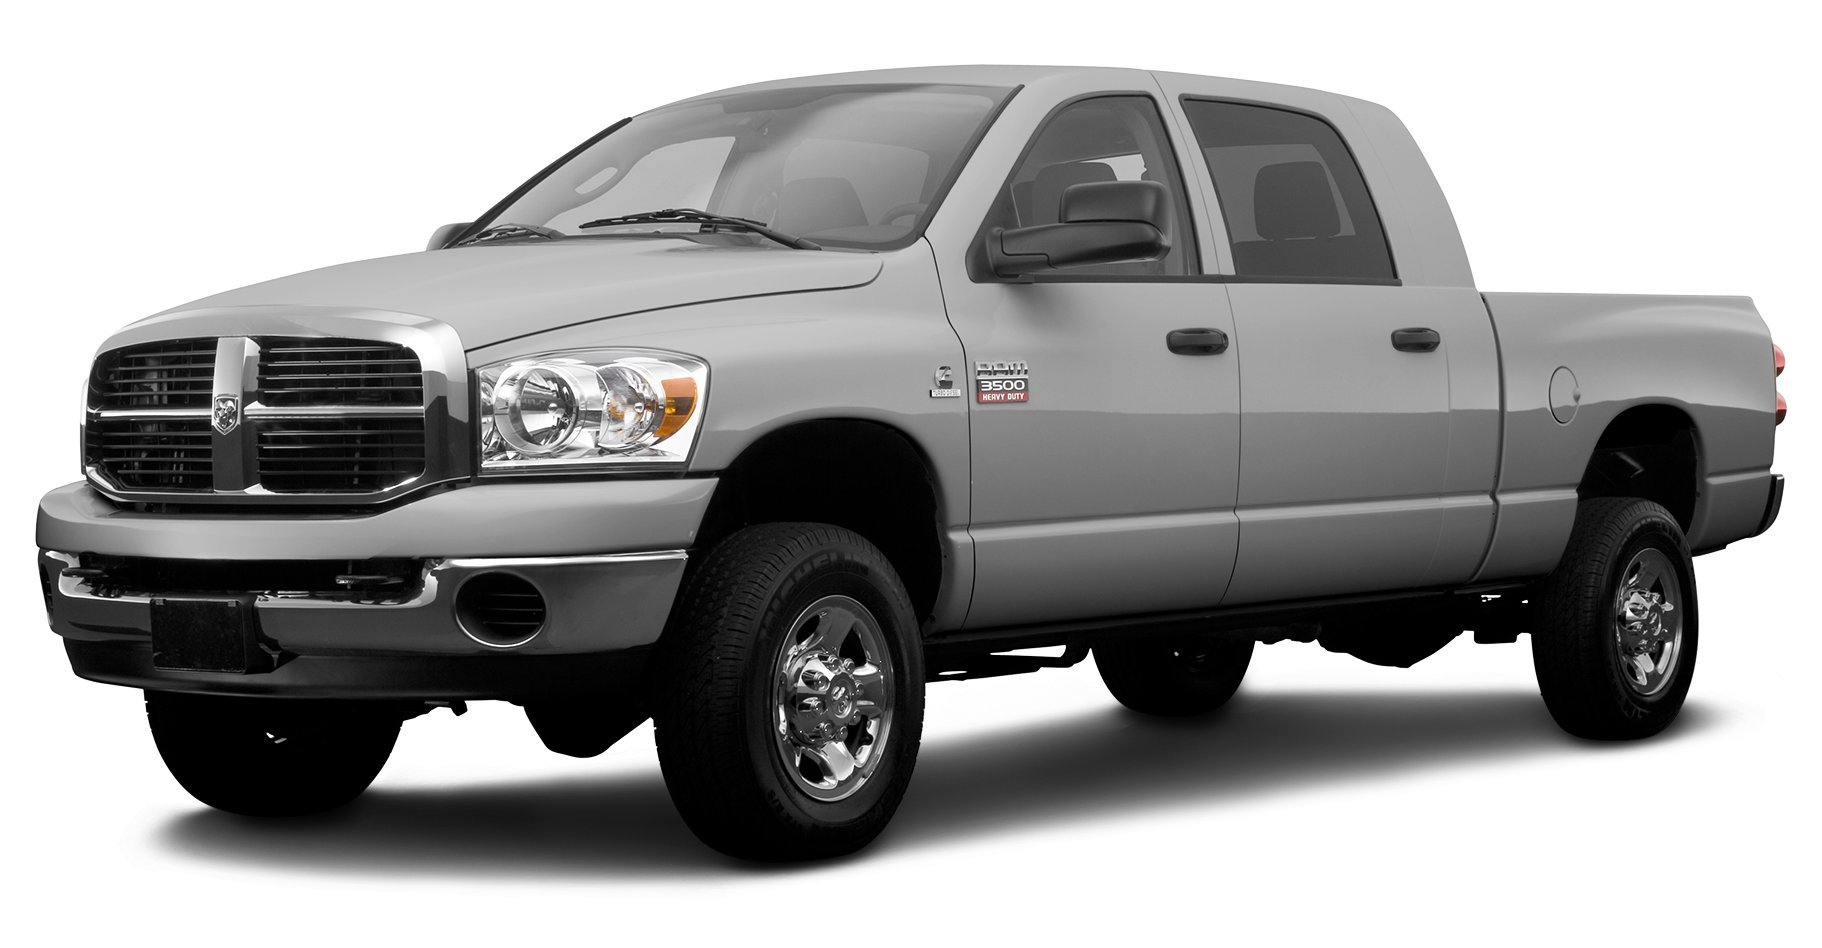 2007 Dodge Ram 3500 Reviews Images And Specs Vehicles 1964 Power Wagon Crew Cab 2 Wheel Drive Quad 60 To Axle